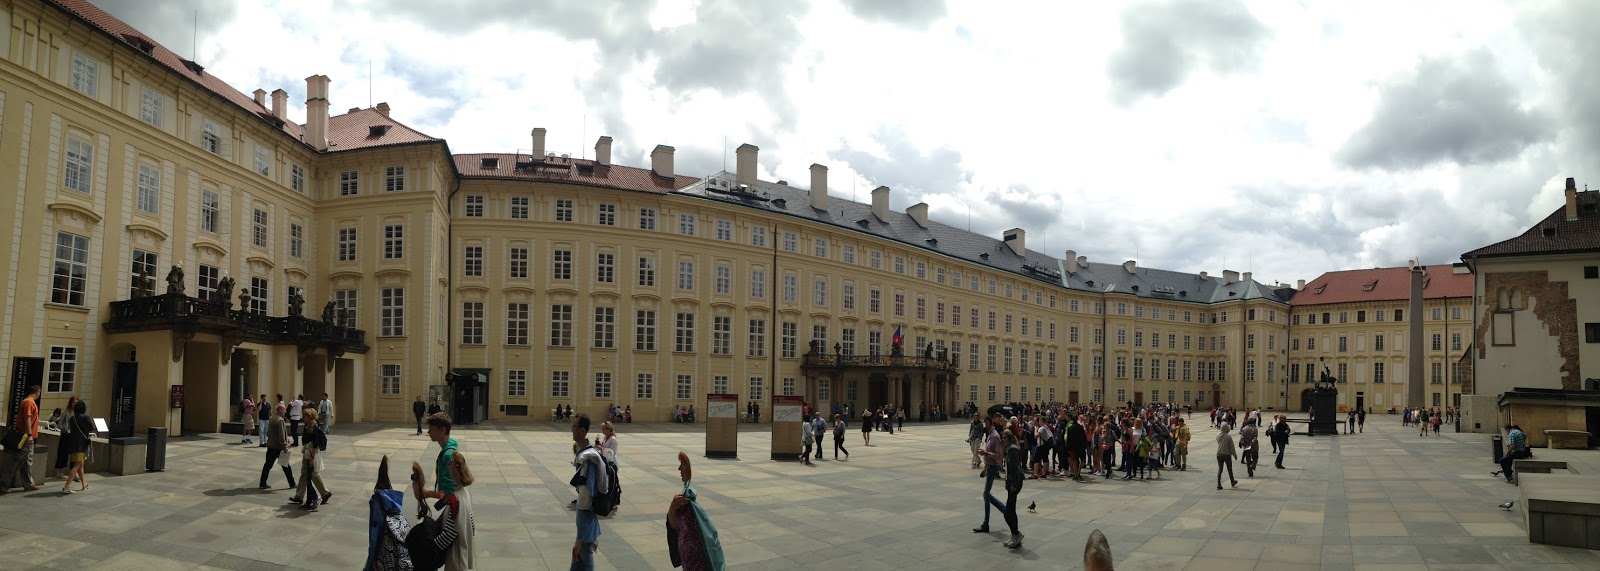 Prague Castle, Lobkowicz Palace